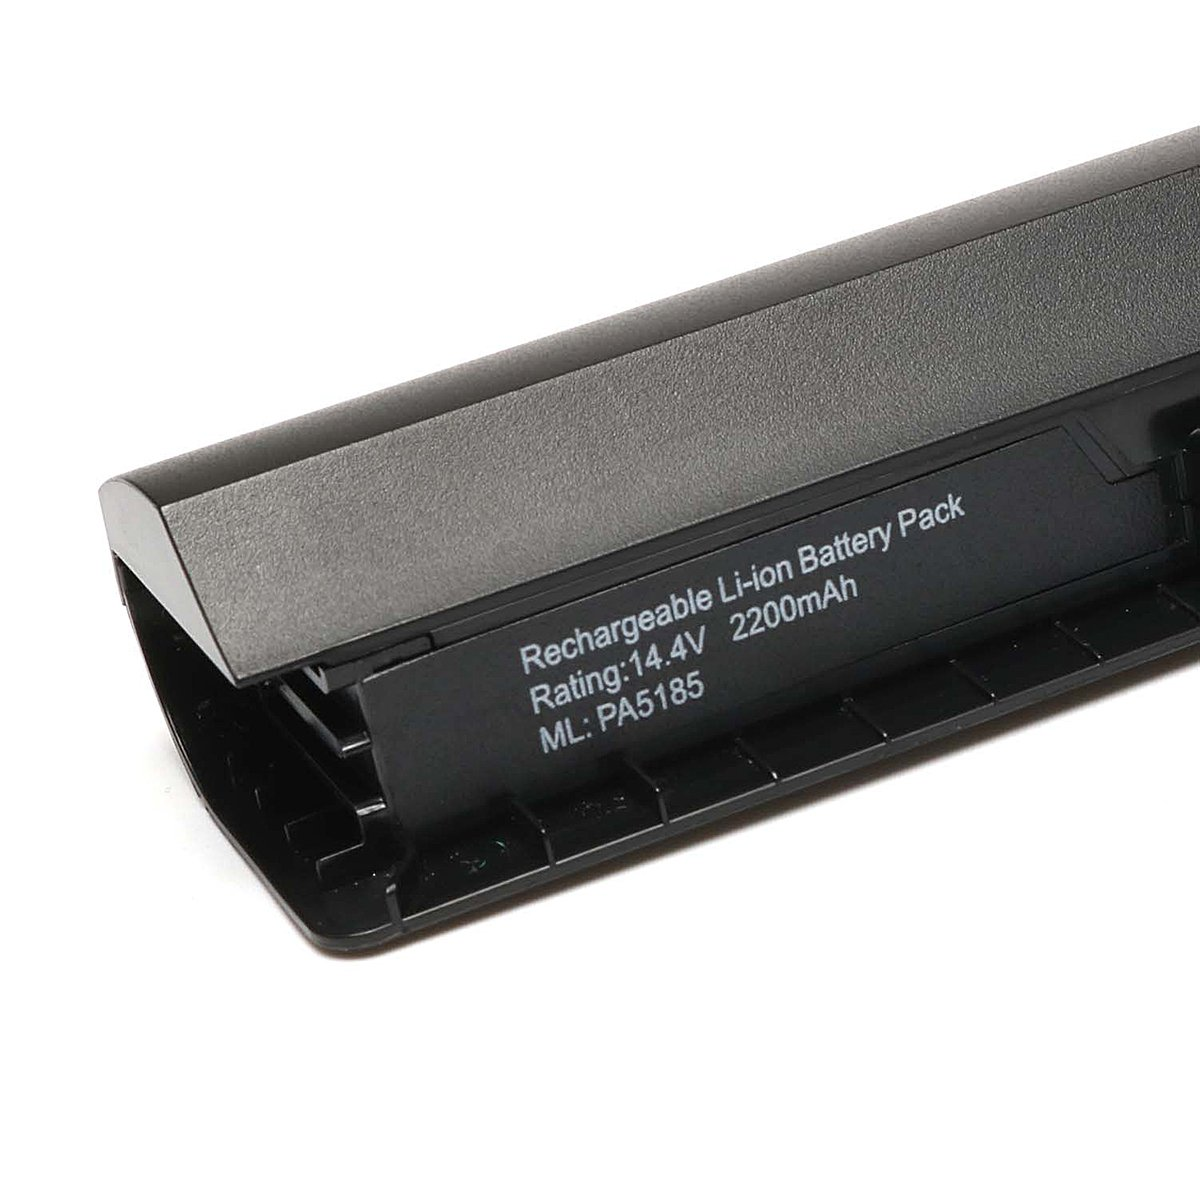 New Replacement PA5185U-1BRS Laptop Battery for Toshiba Satellite C50 C55 C55D C55T L55 L55D L55T Series fit C55-B5200 C55-B5270 C55D-B5310 PA5184U-1BRS PA5186U-1BRS PA5195U-1BRS - 12 Month Warranty by TSKYBEAR (Image #4)